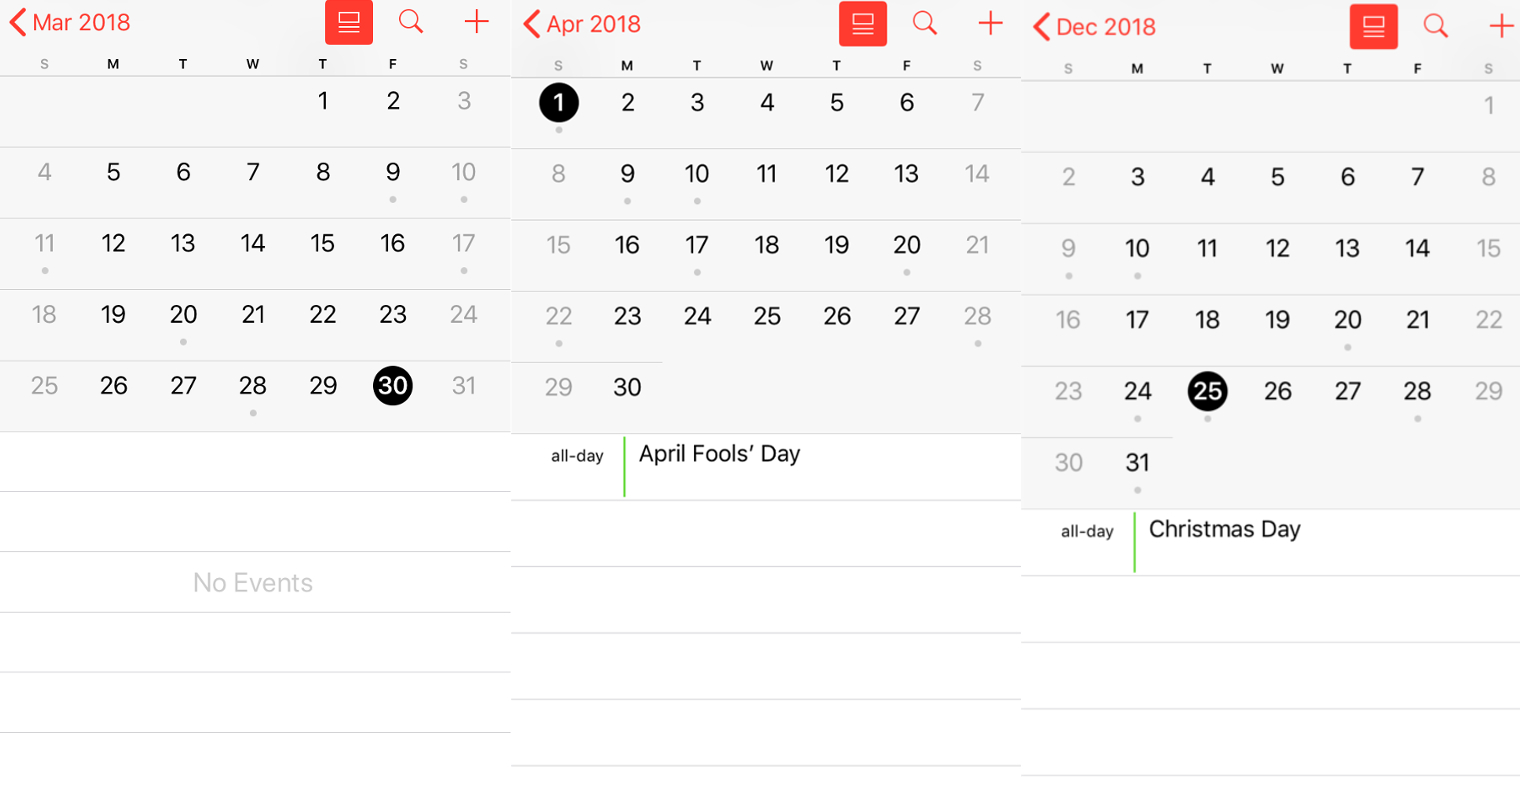 The US Holidays Calendar On IOS 1126 App Doesnt Feature Good Friday 30 March Or Easter Sunday 1 April But It Does Mark Christmas